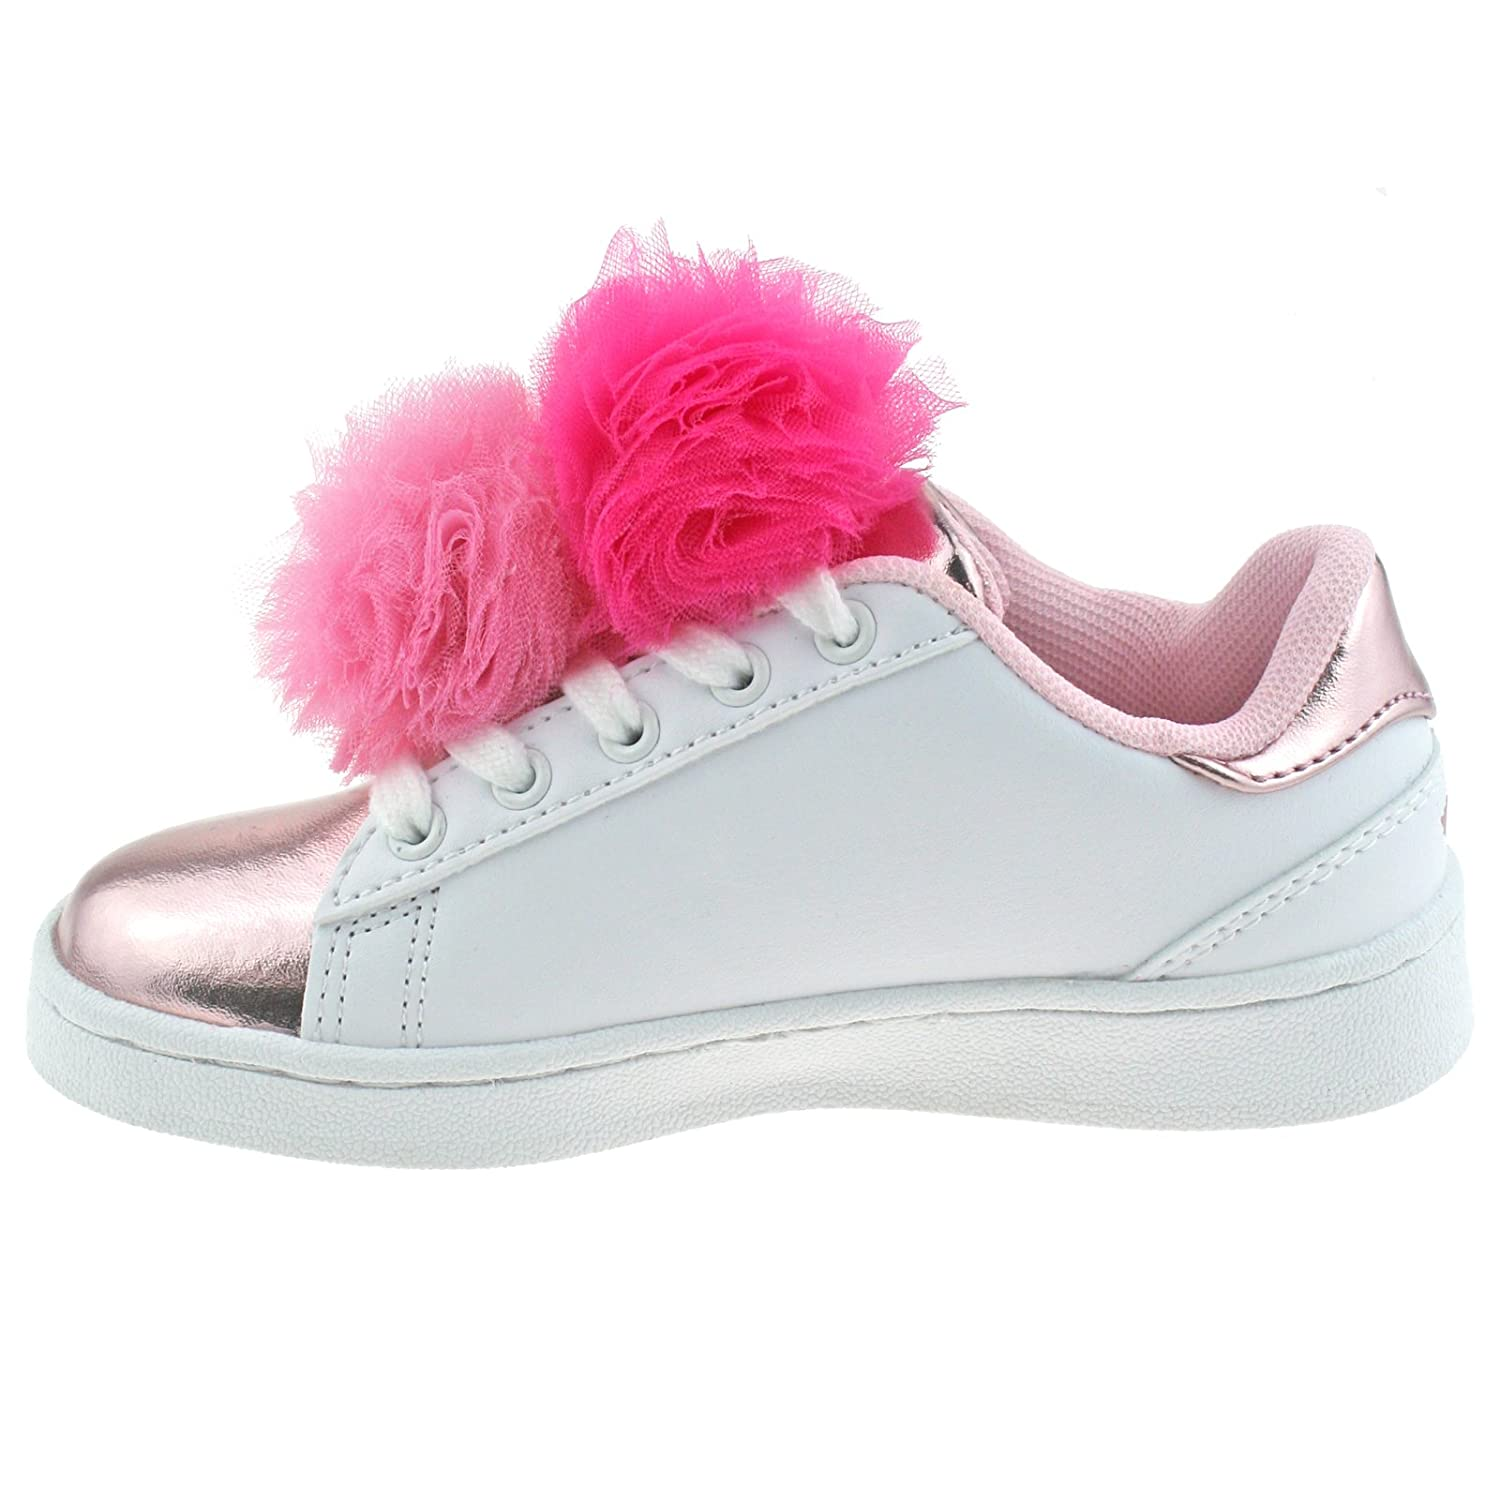 Lelli Kelly LK5826 (AA52) Bianco/Rosa Pon Pon Lace Up Trainer Shoes-33 (UK 1) rK4Crs